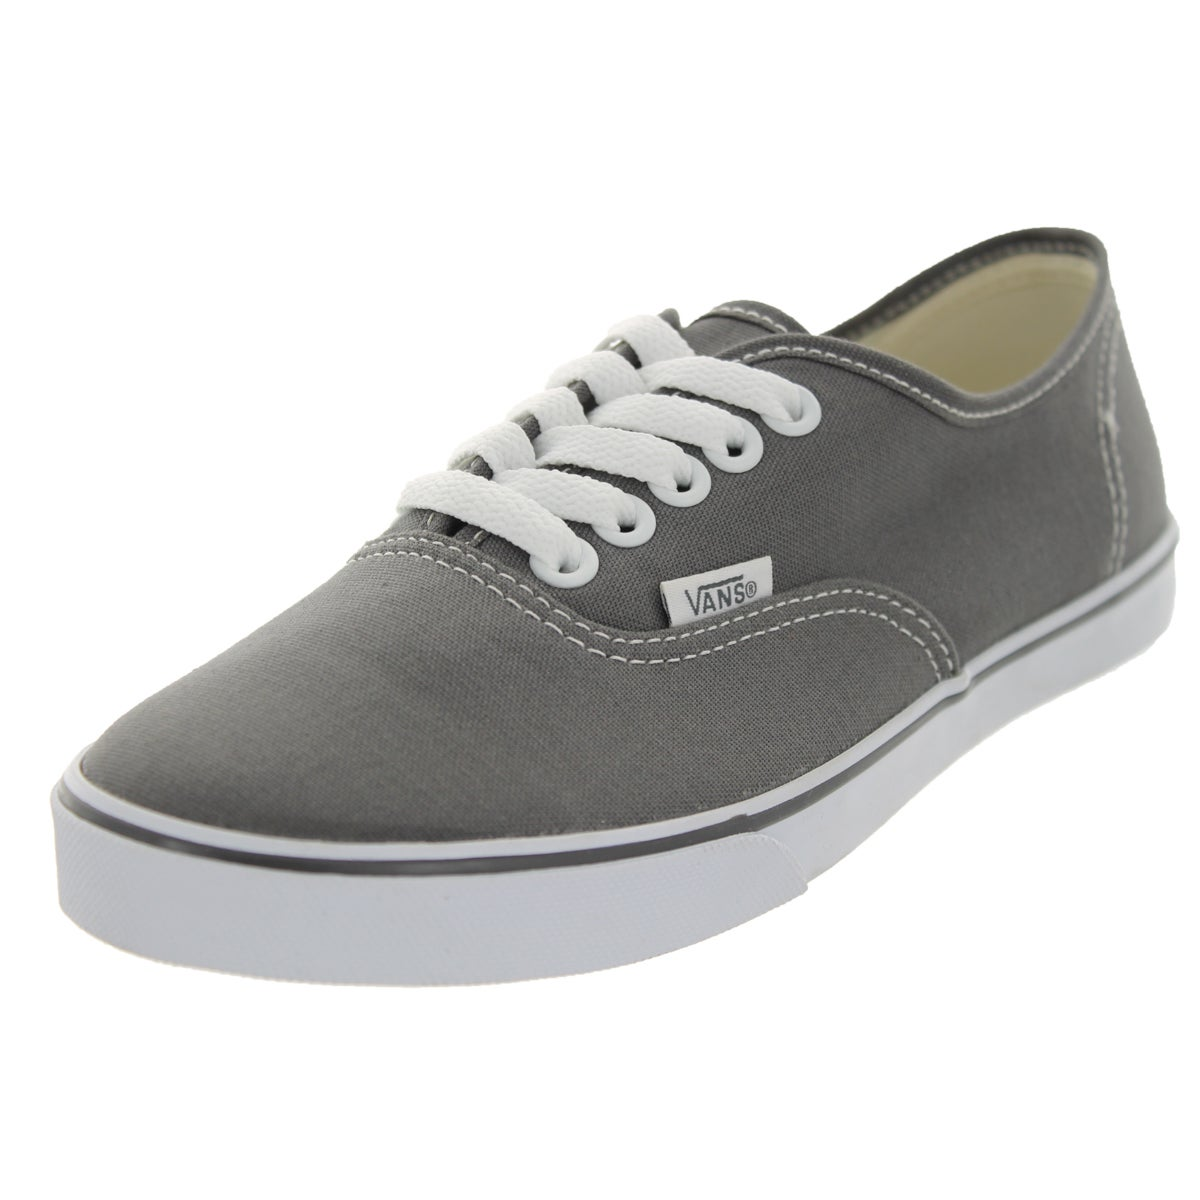 Vans Authentic Lo Pro Pewter/True White Canvas Casual Sho...